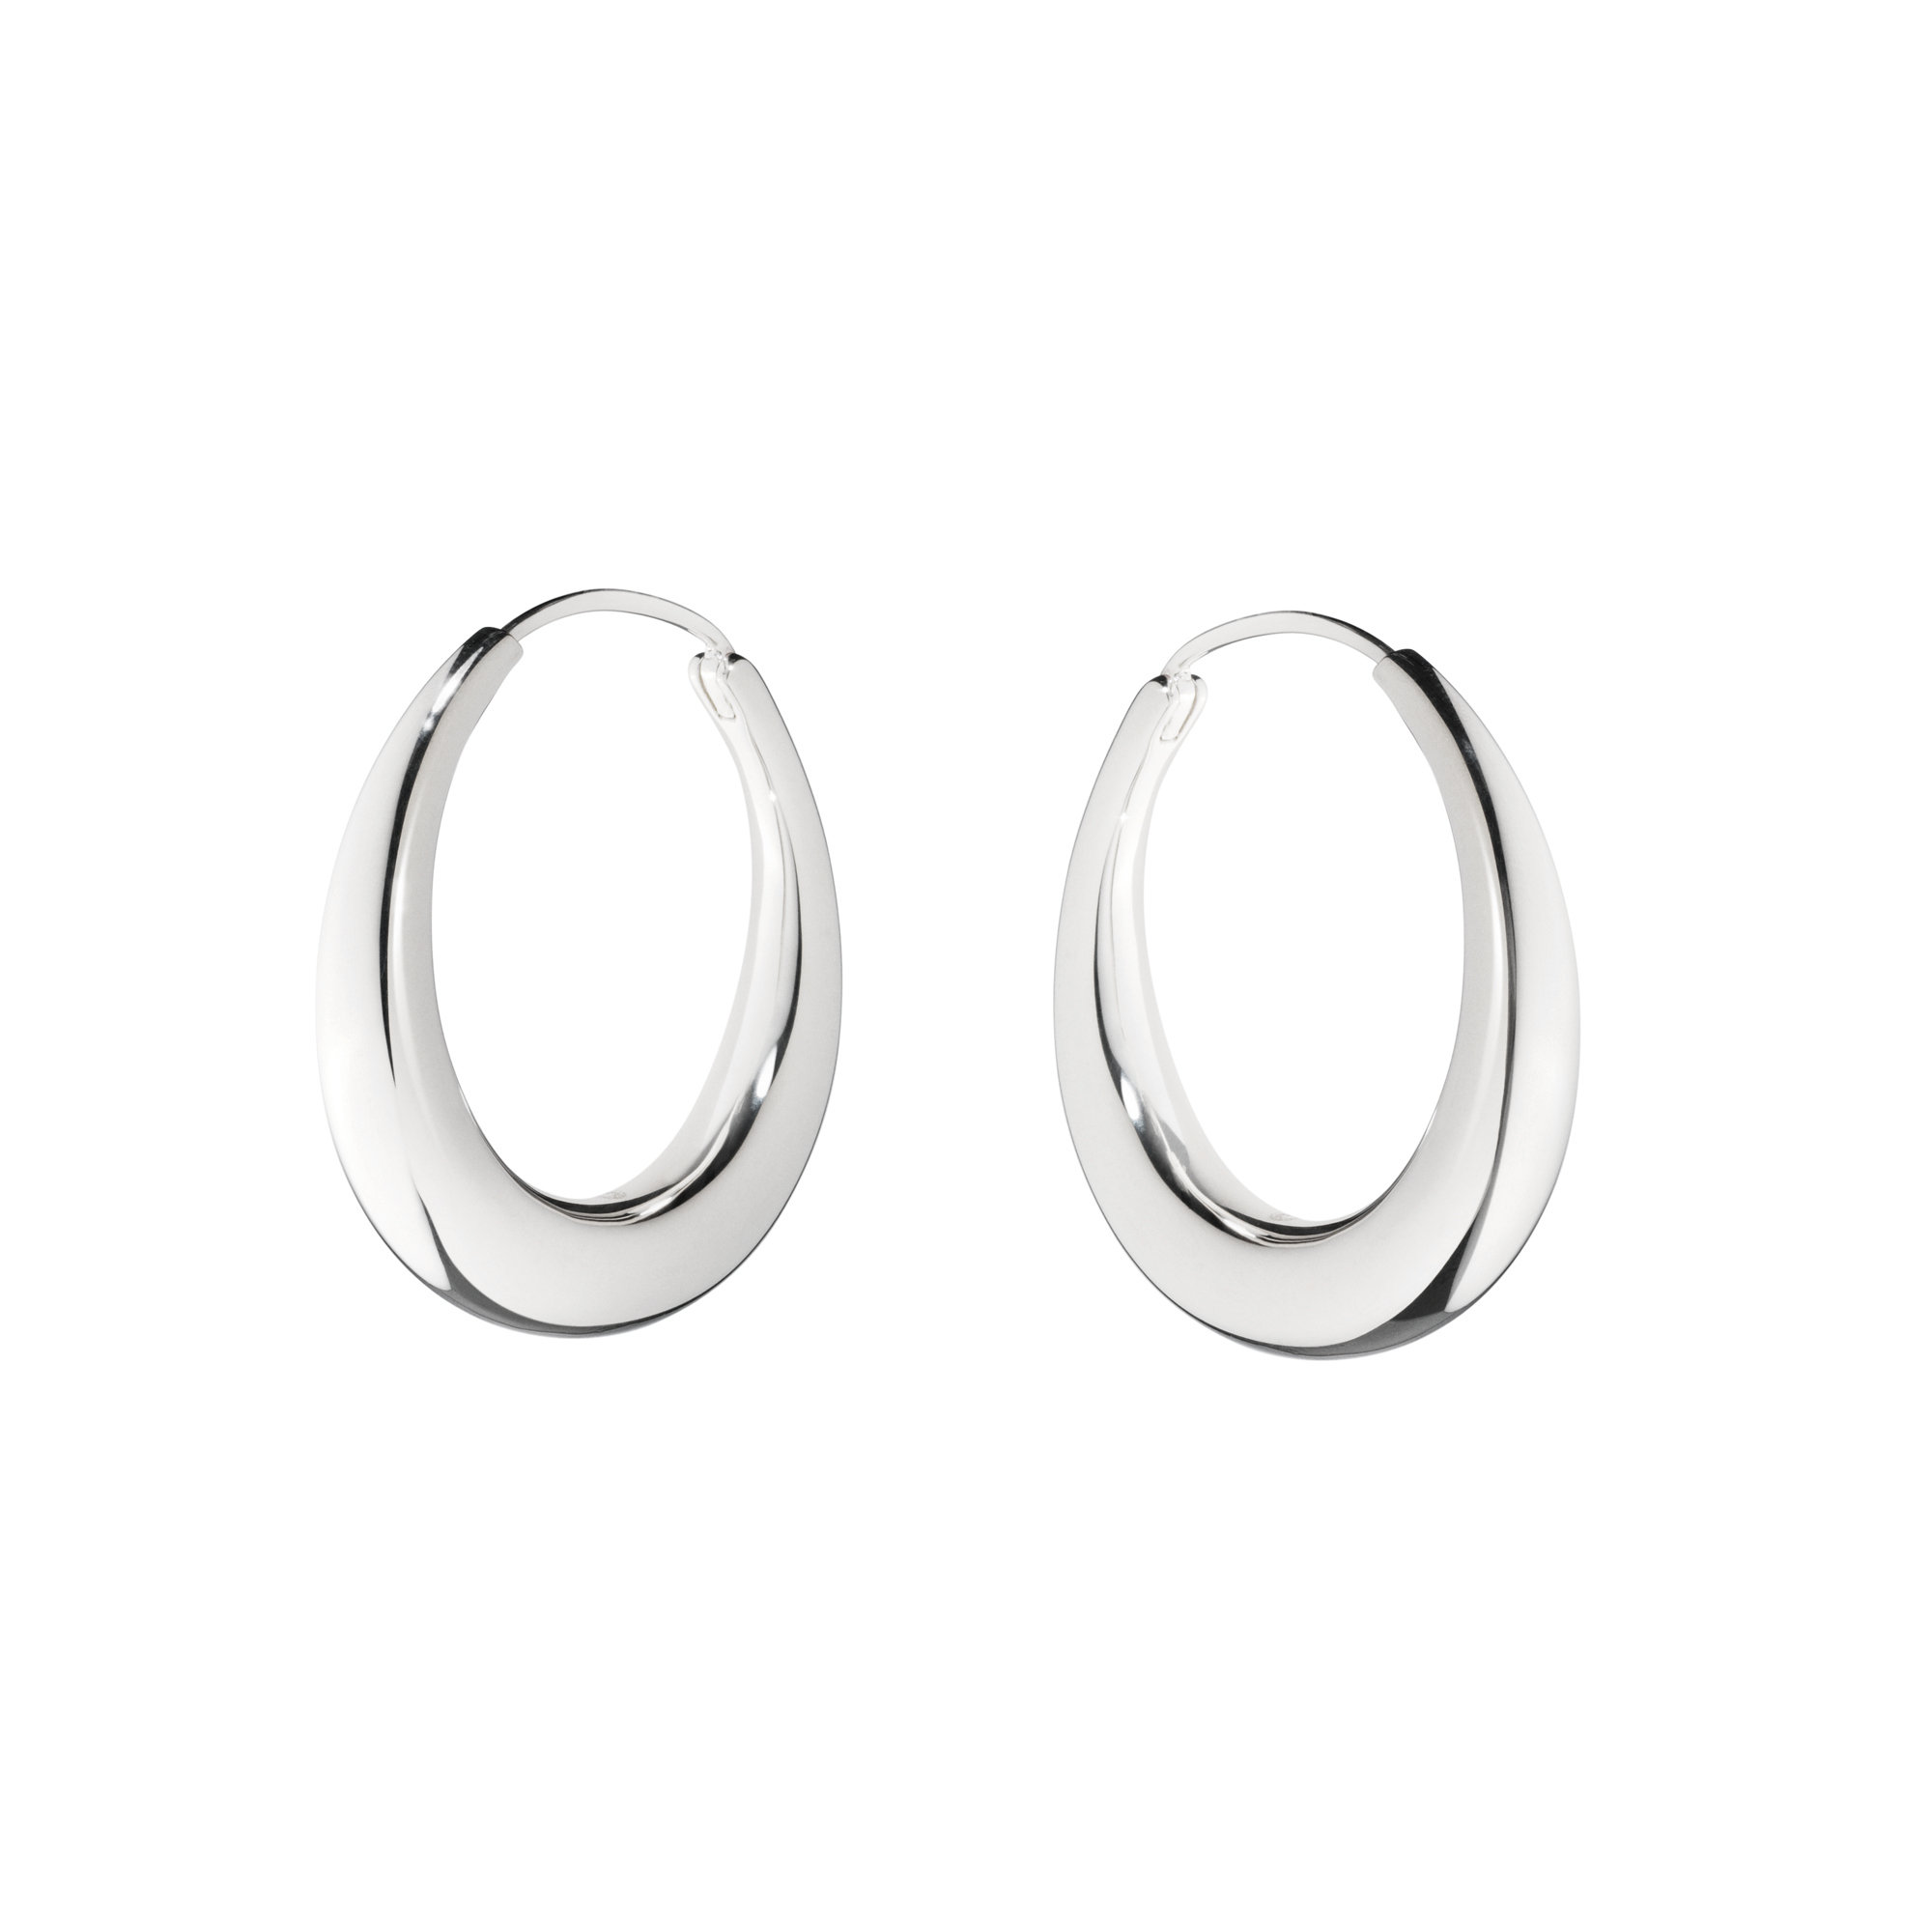 Georg Jensen Archive Collection Sterling Silver Hoop Earrings